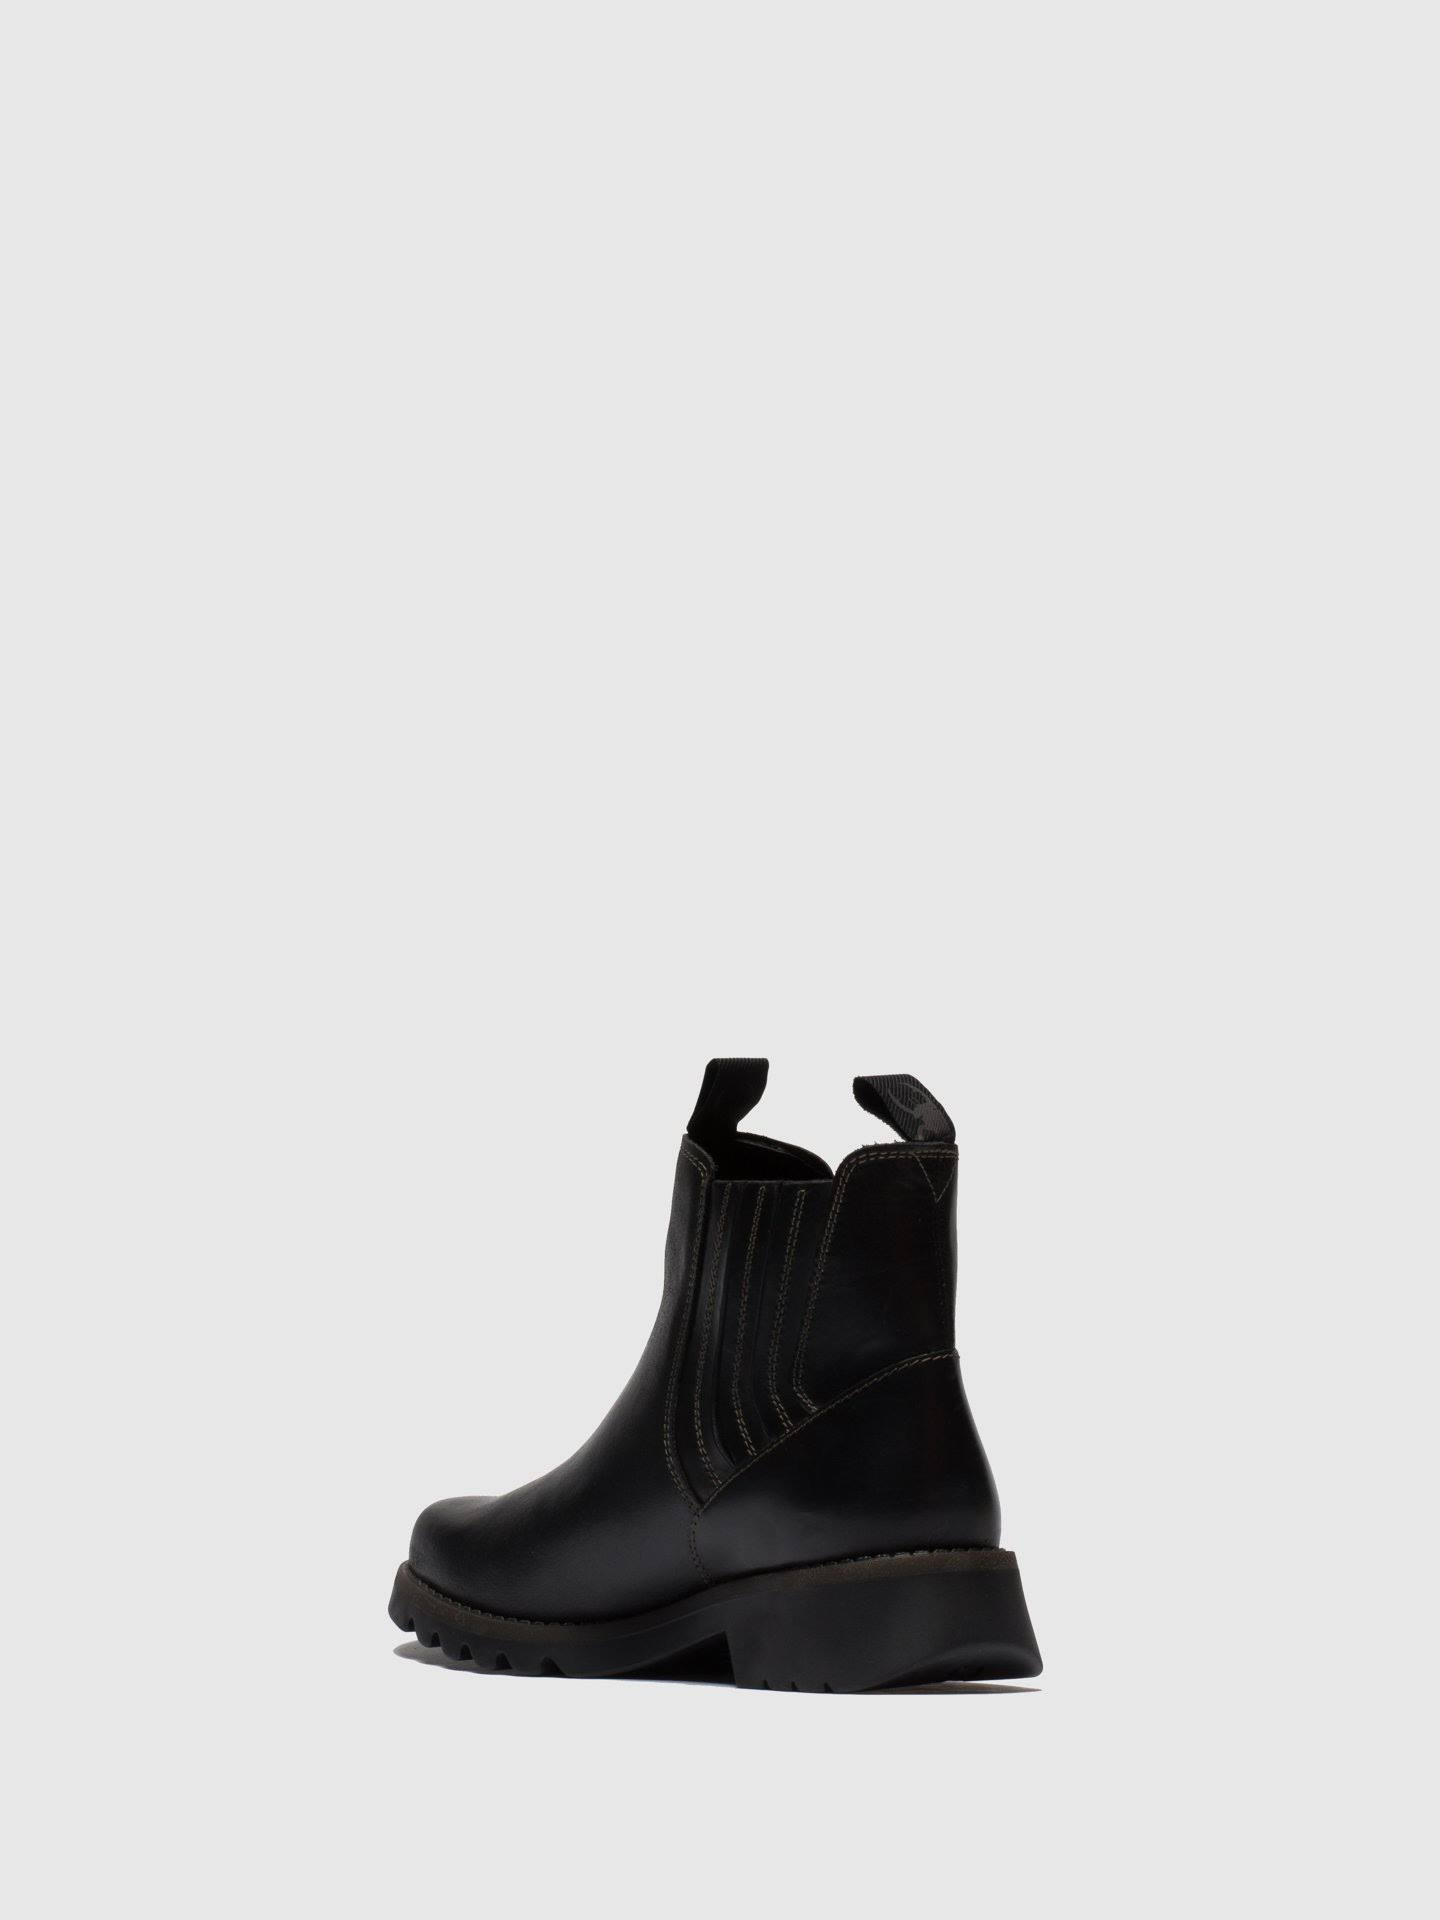 FLY LONDON Ralt Black Leather Chunky Chelsea Boots Colour: Black Leath  DlwtVx